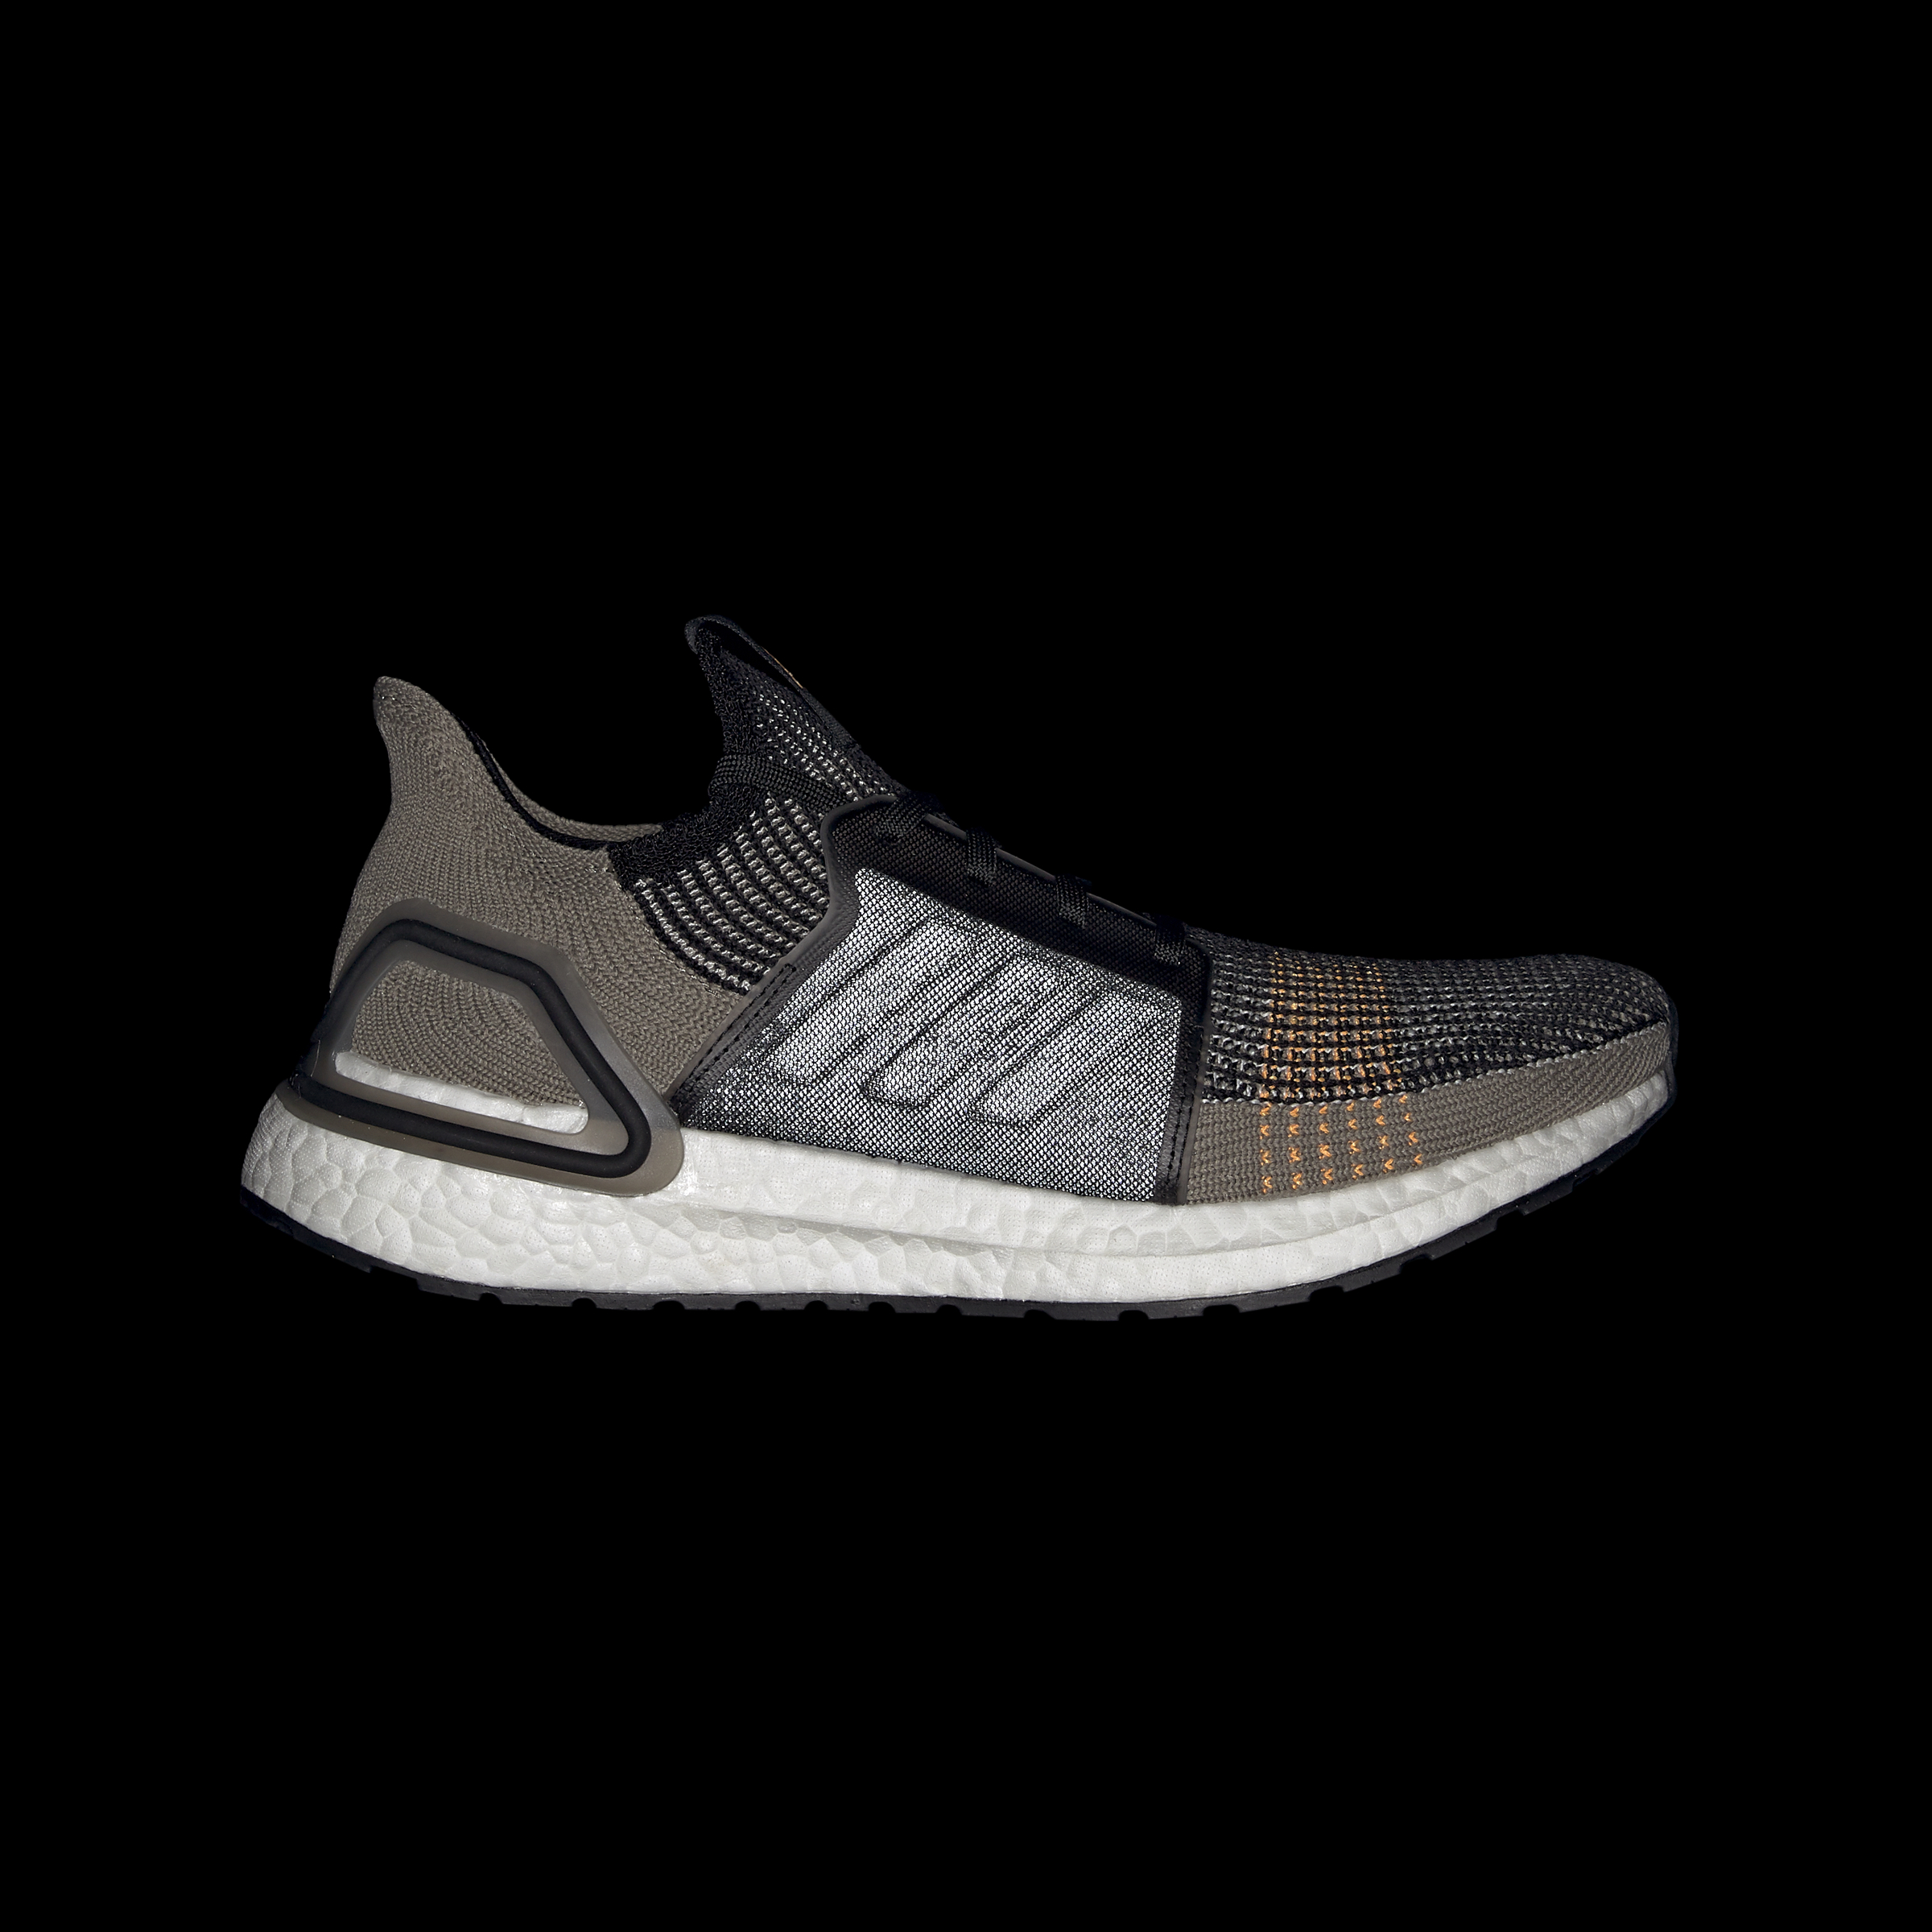 adidas-Ultraboost-19-Shoes-Athletic-amp-Sneakers thumbnail 84